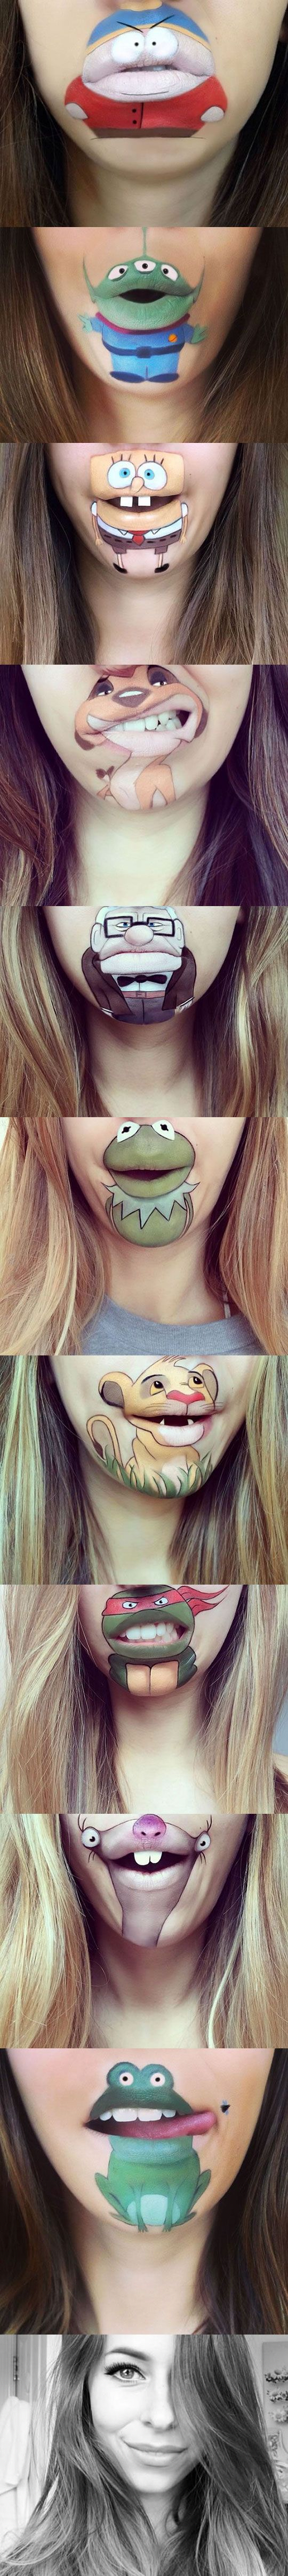 Awesome Lip Makeup